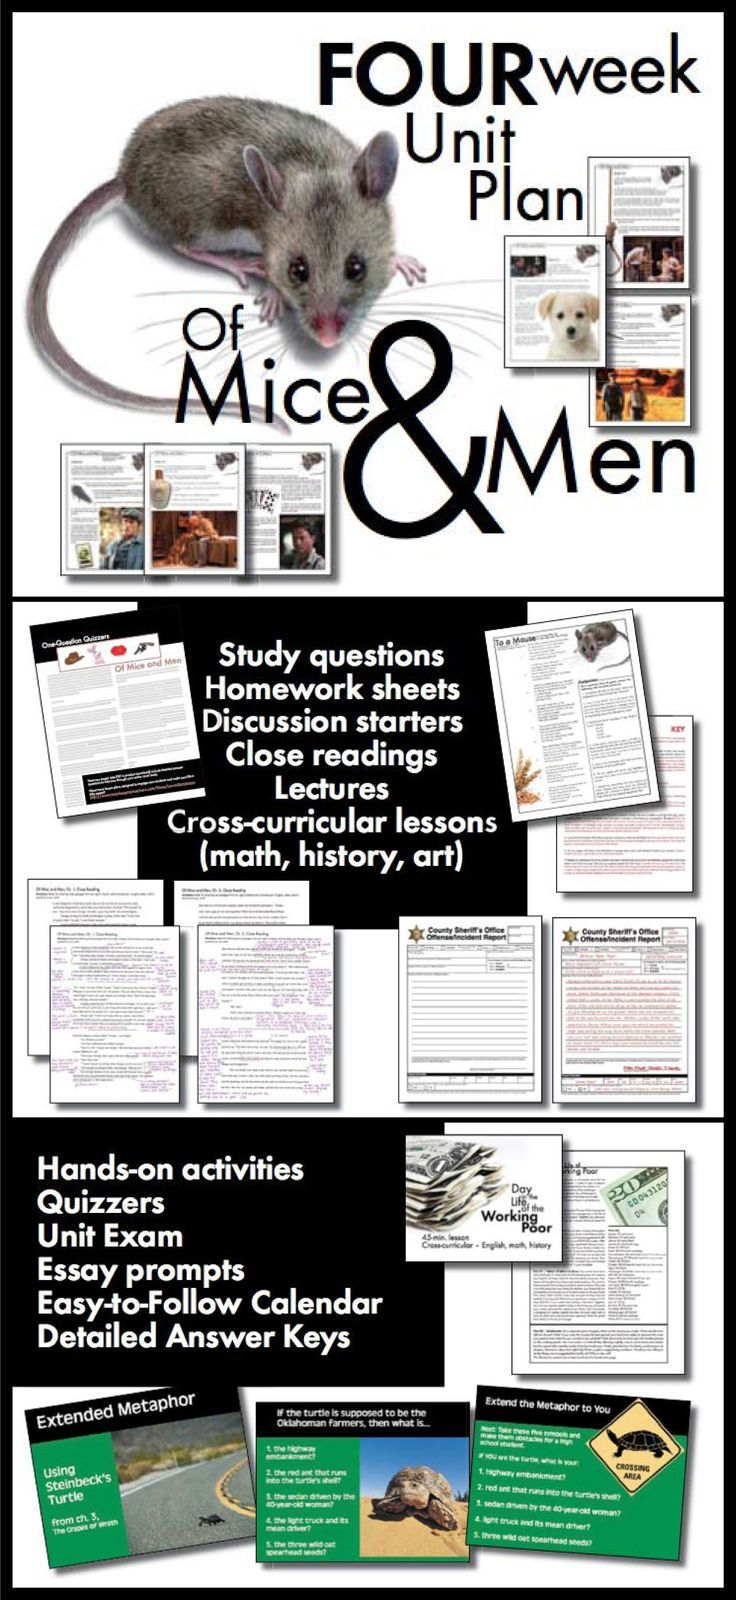 of mice and men friendship theme essay best images about of mice  best images about of mice and men literature of mice and men unit plan four full